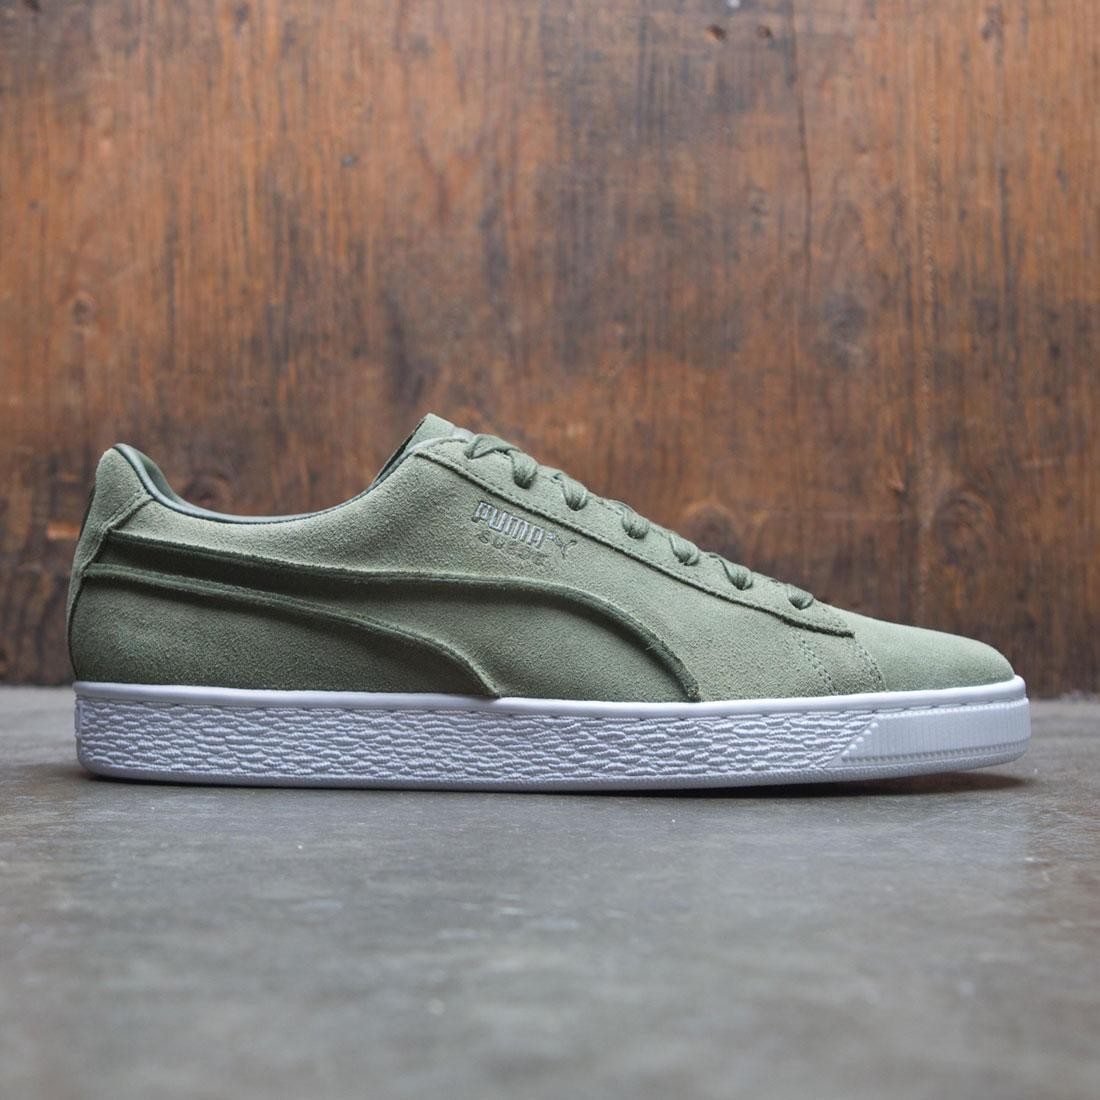 nouveau style 52f67 5b256 Puma Men Suede Classic - Exposed Seams (olive)